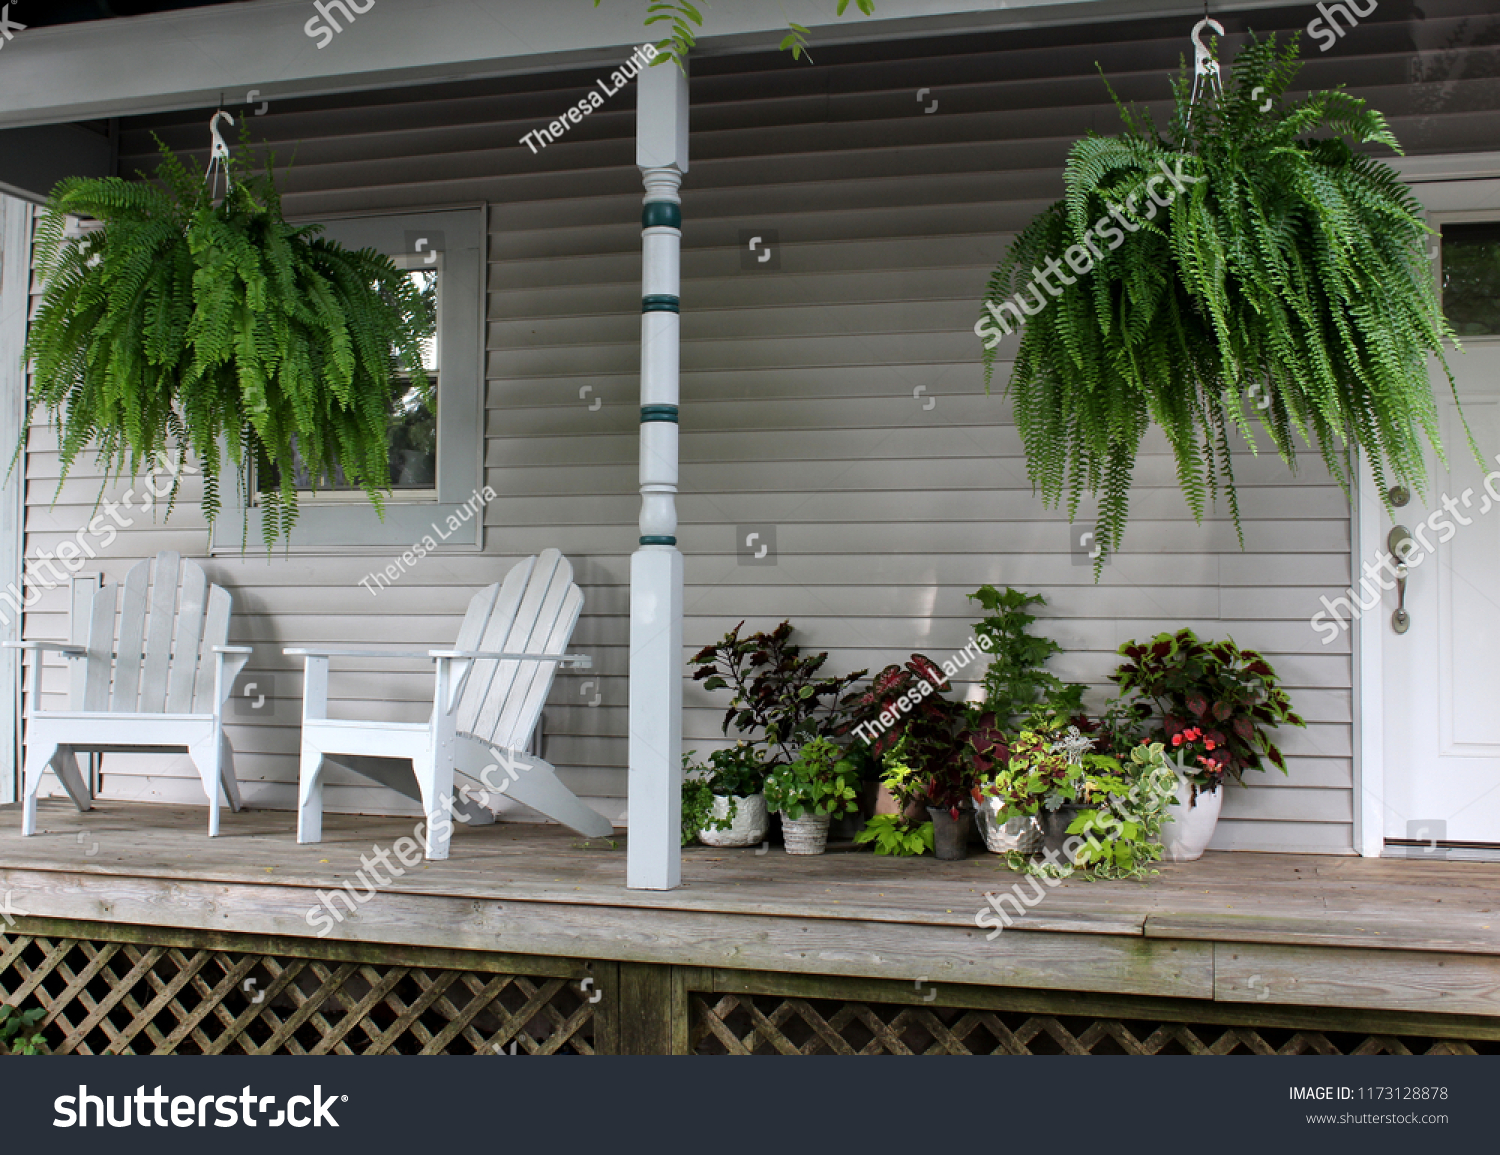 Warm and welcoming southern front porch with potted plants hanging ferns and two adirondack